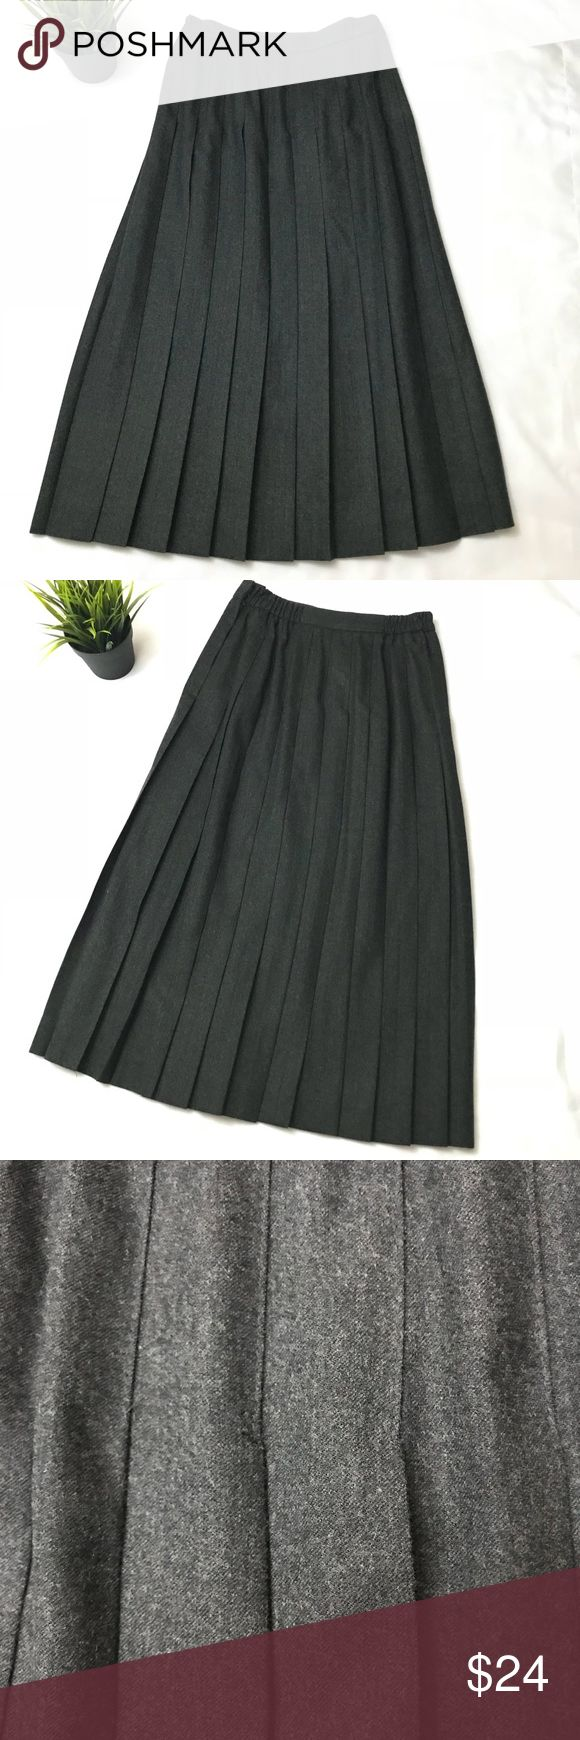 Talbots Wool Pleated Skirt Talbots Petites Women's Pleated skirt    100% Wool, Elastic Waist, Zip Up, Button Closure in the Side   Size: 6P  Color: Charcoal Gray , almost black   Measurement laid flat:  Waist- 12 inches across ( elastic)  Waist to hem/ length - 30 inches  Excellent Condition Talbots Skirts A-Line or Full